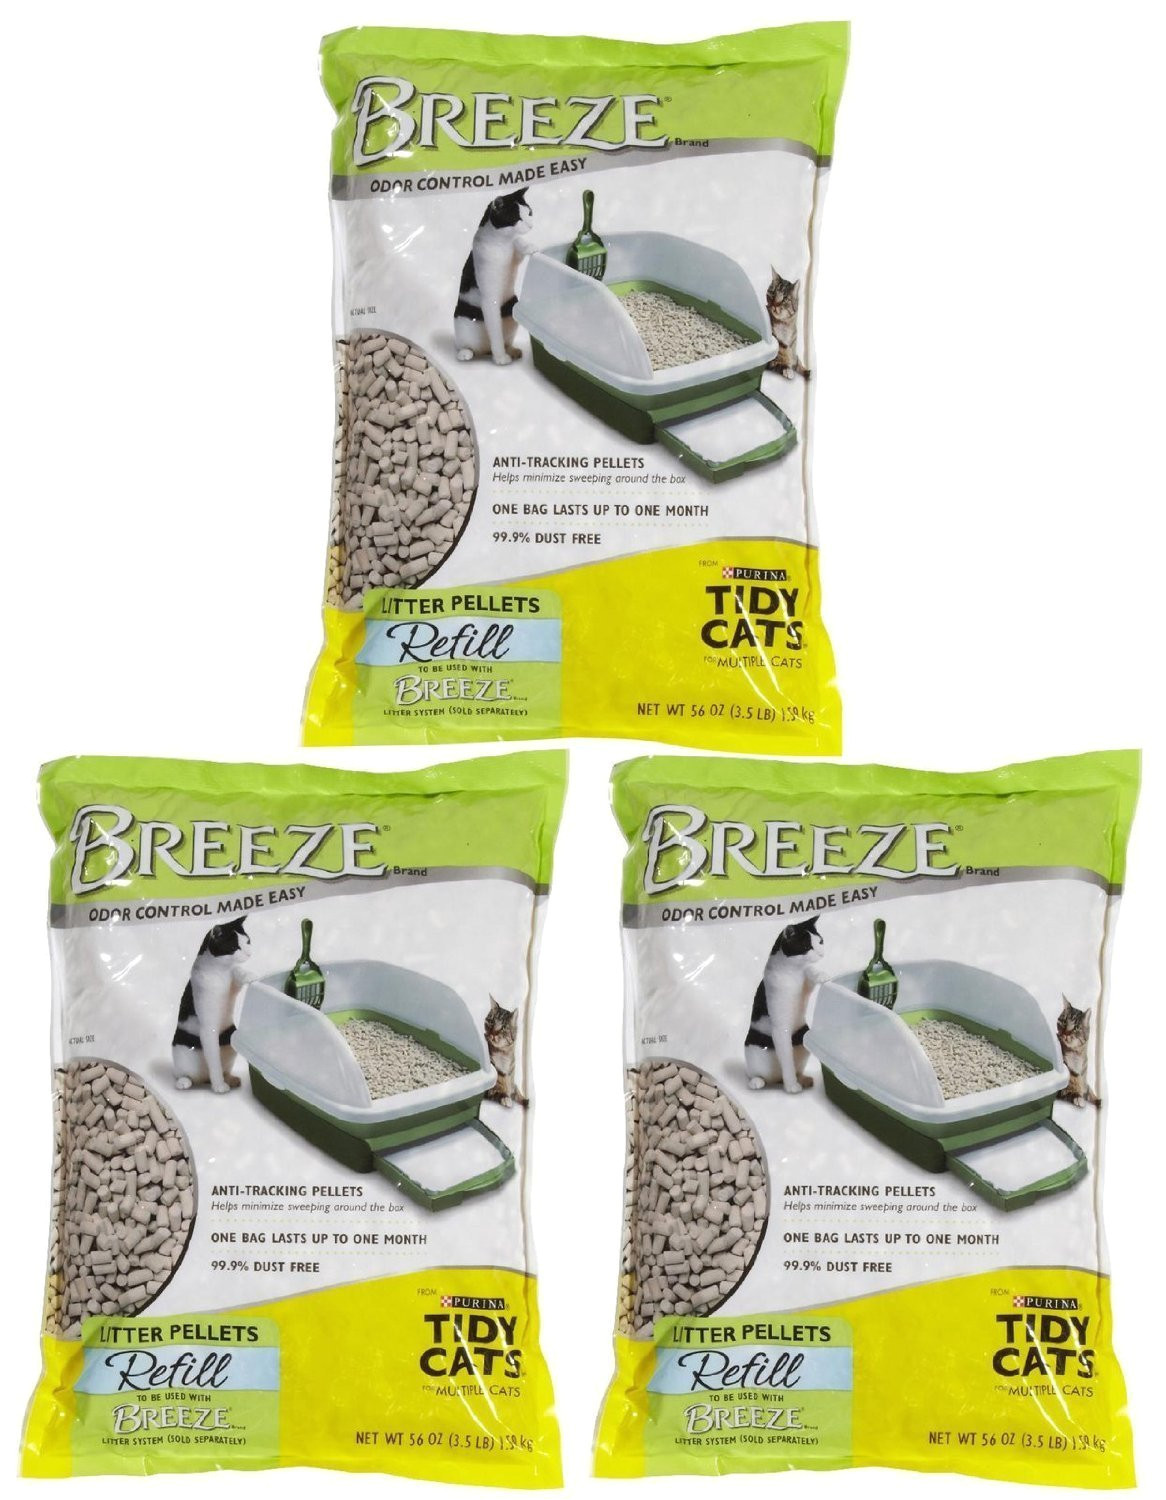 amazon com tidy cats pack of 3 breeze cat litter pellets 3 5 lb pet supplies